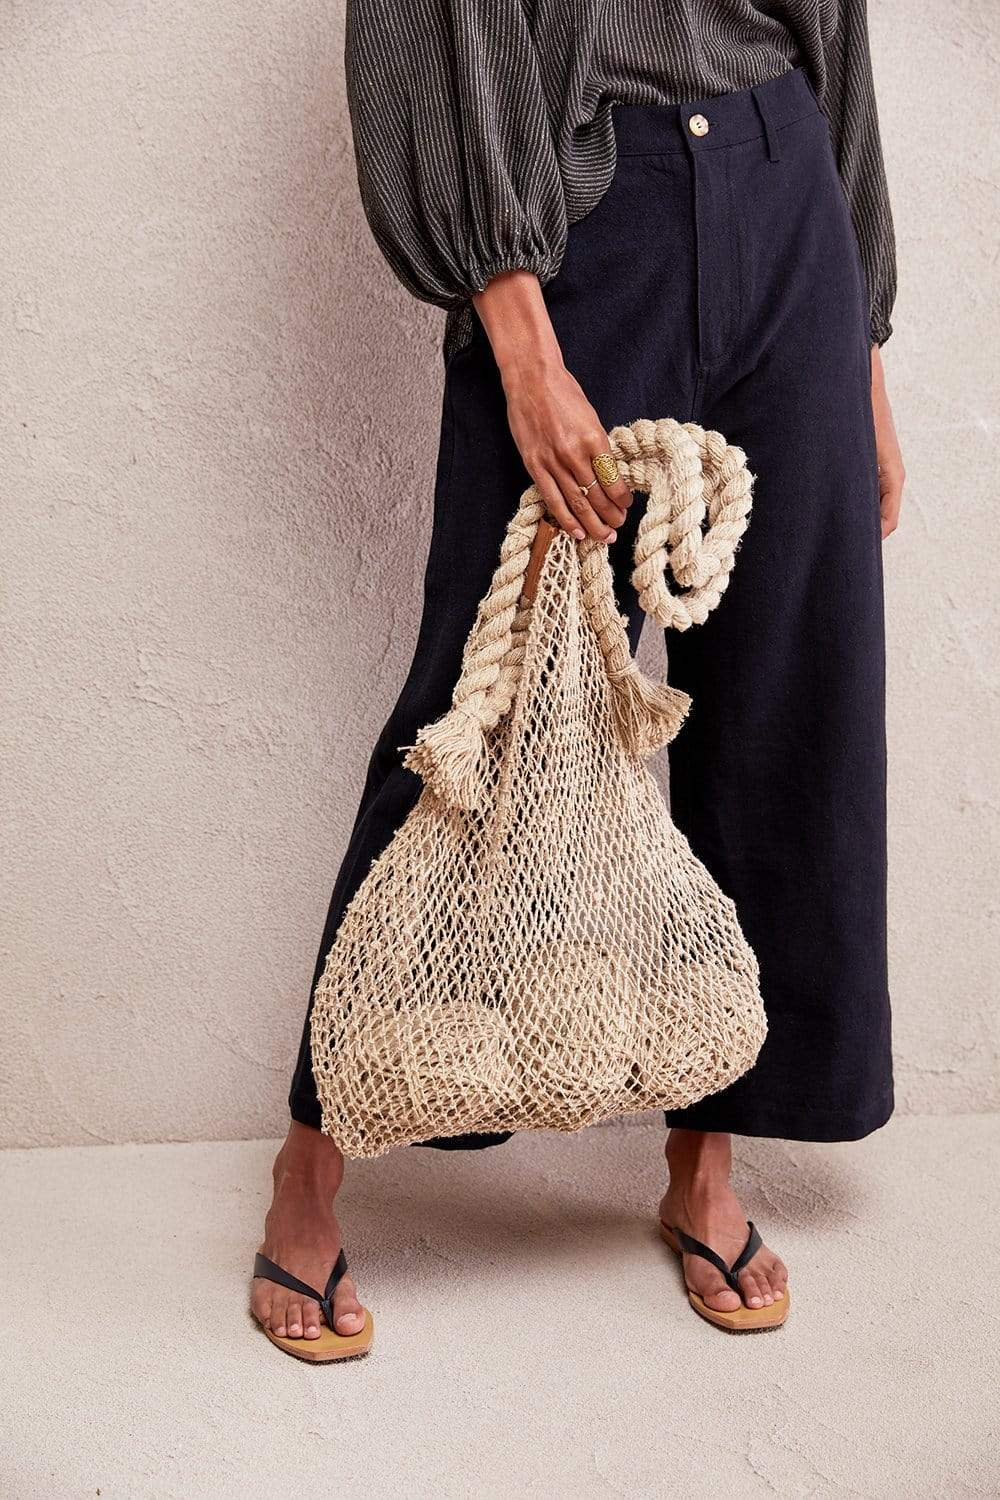 The Dharma Door Bags and Totes Jumbo Hemp String Bag - Natural